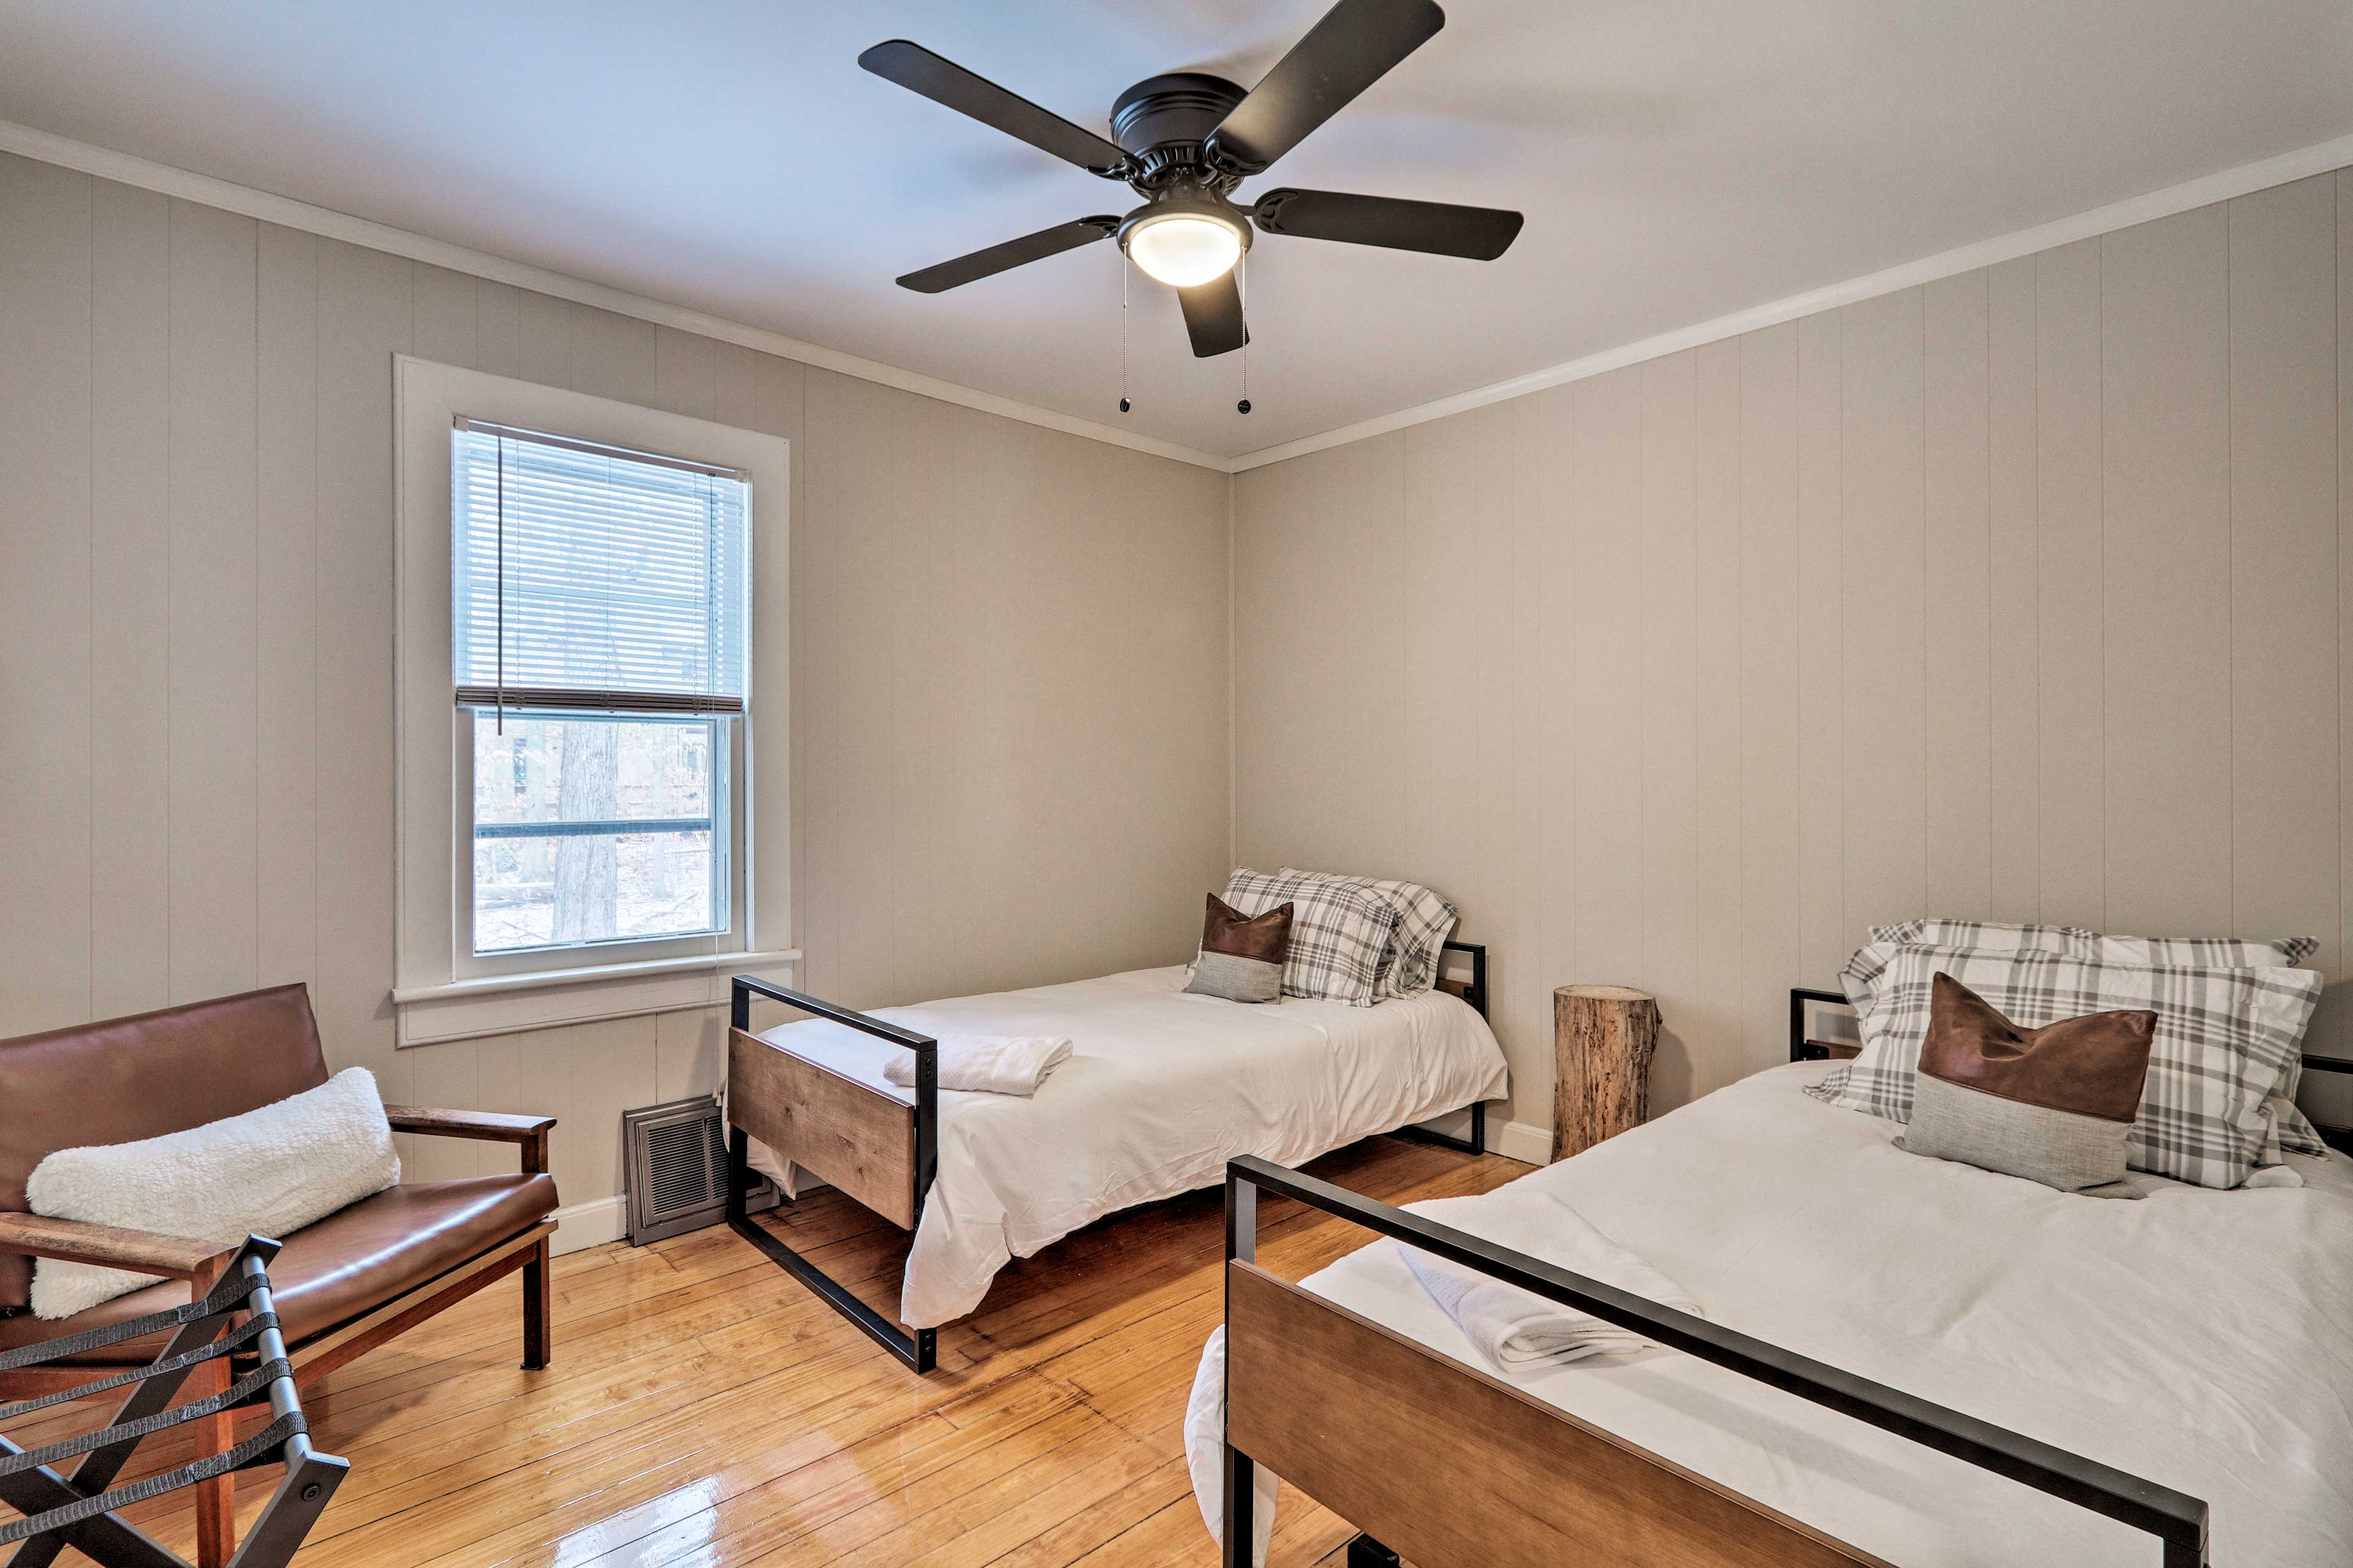 The second children's bedroom features a leather chair as well as 2 twin beds.